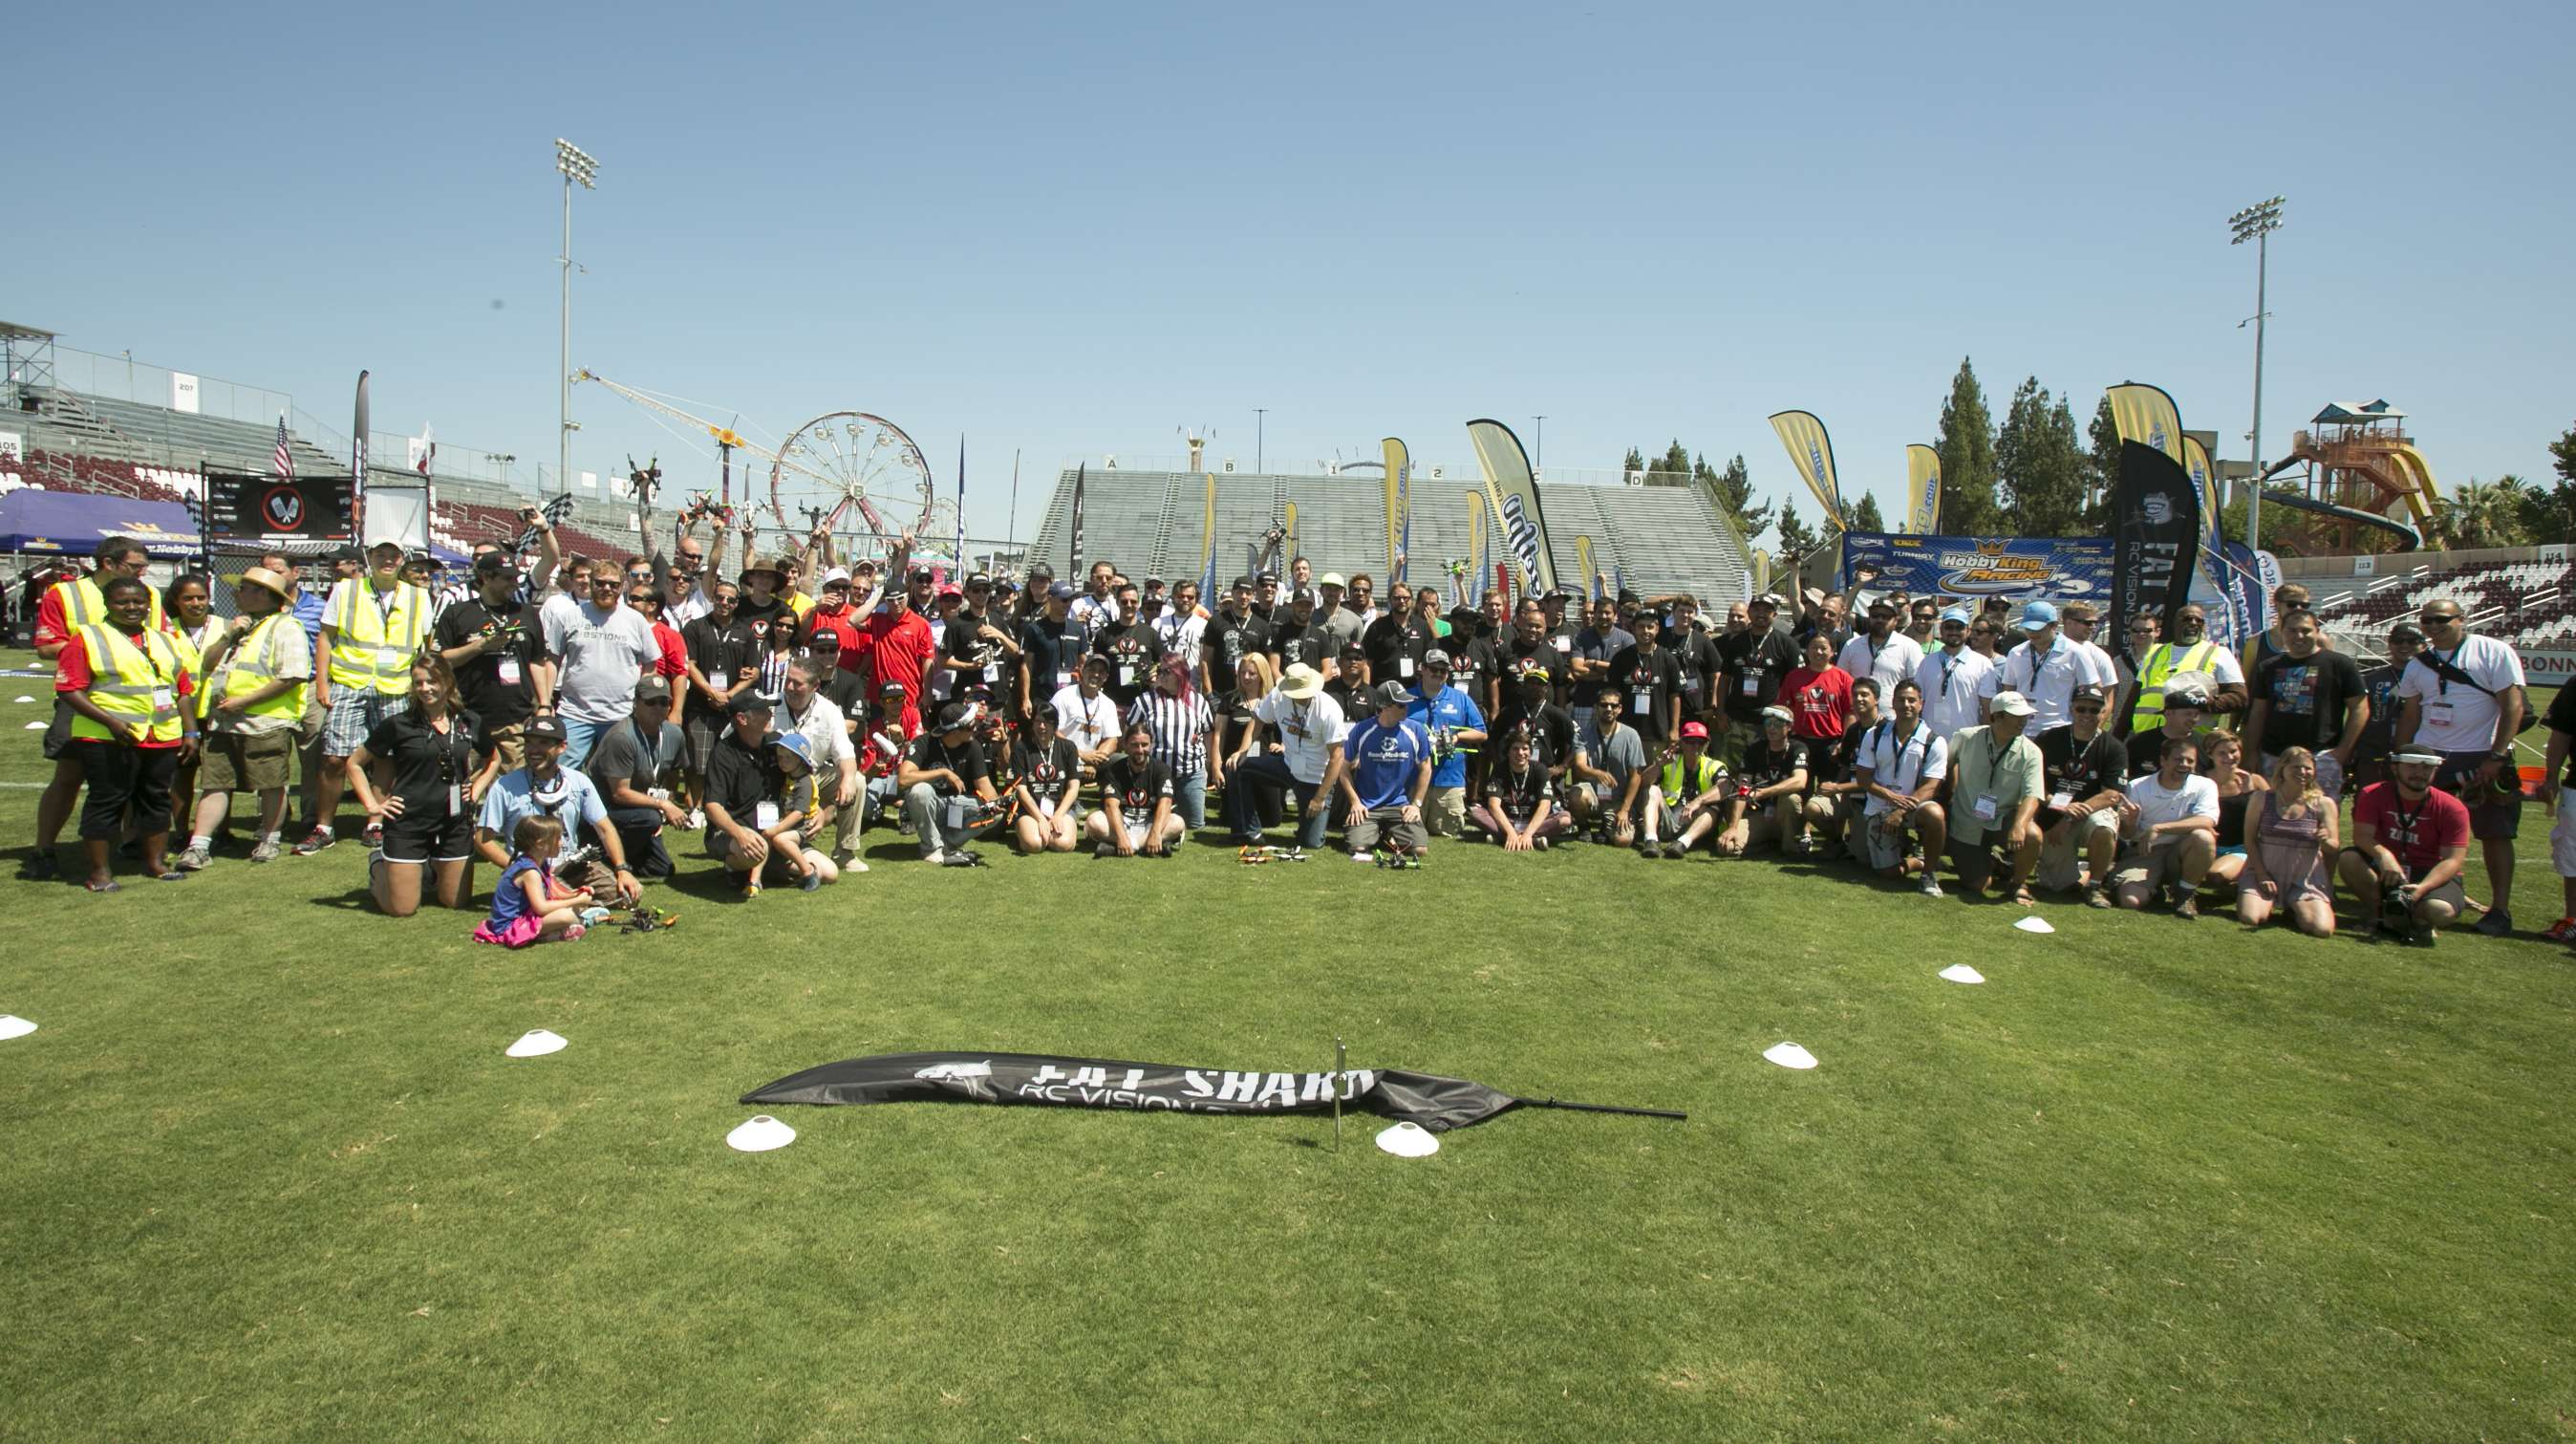 Class photo at the 2015 National Championships in Sacramento